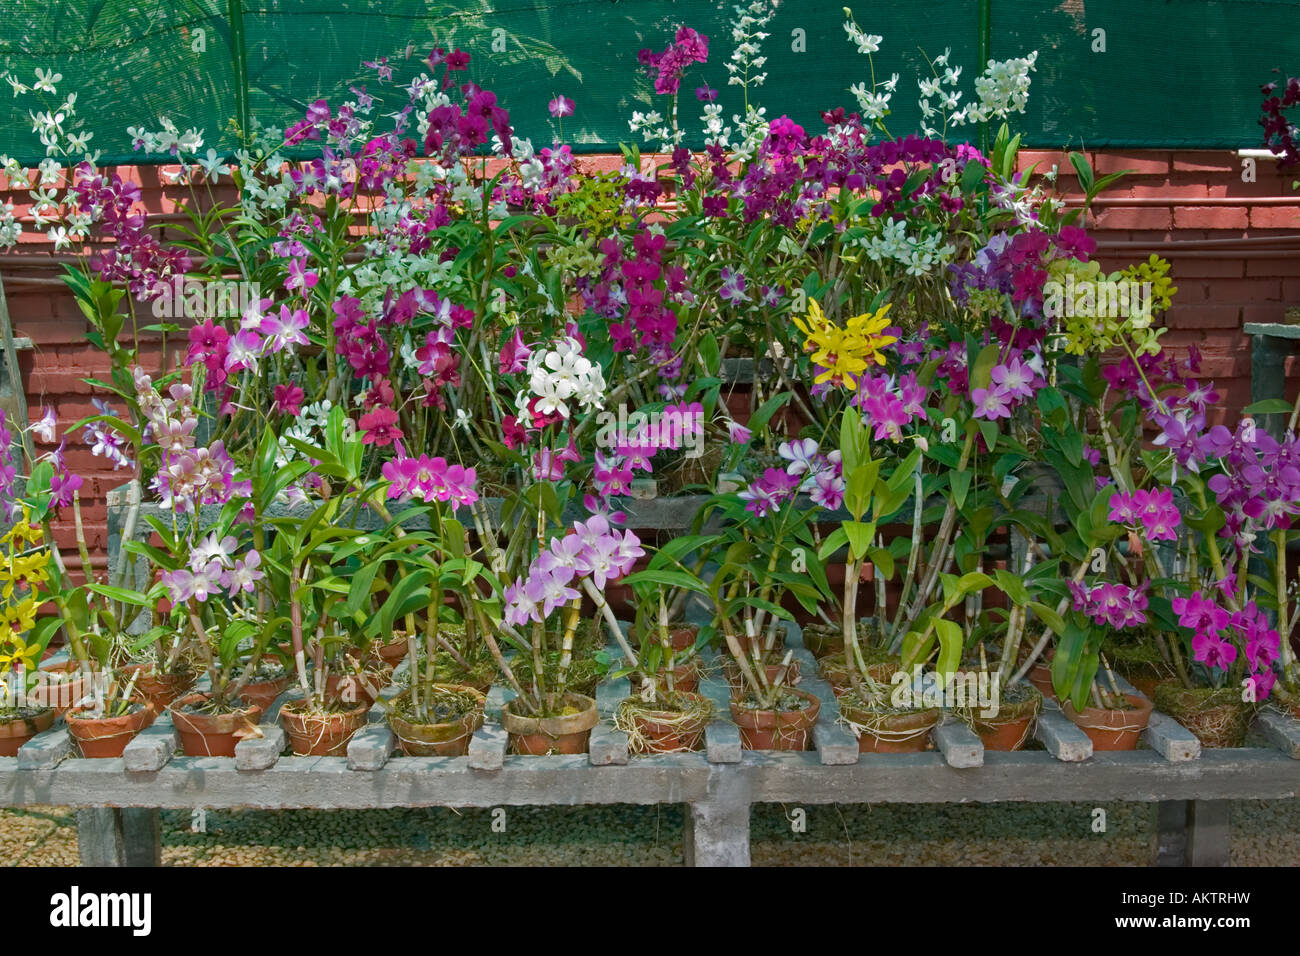 Orchids In Bloom Stock Photo 15073284 Alamy